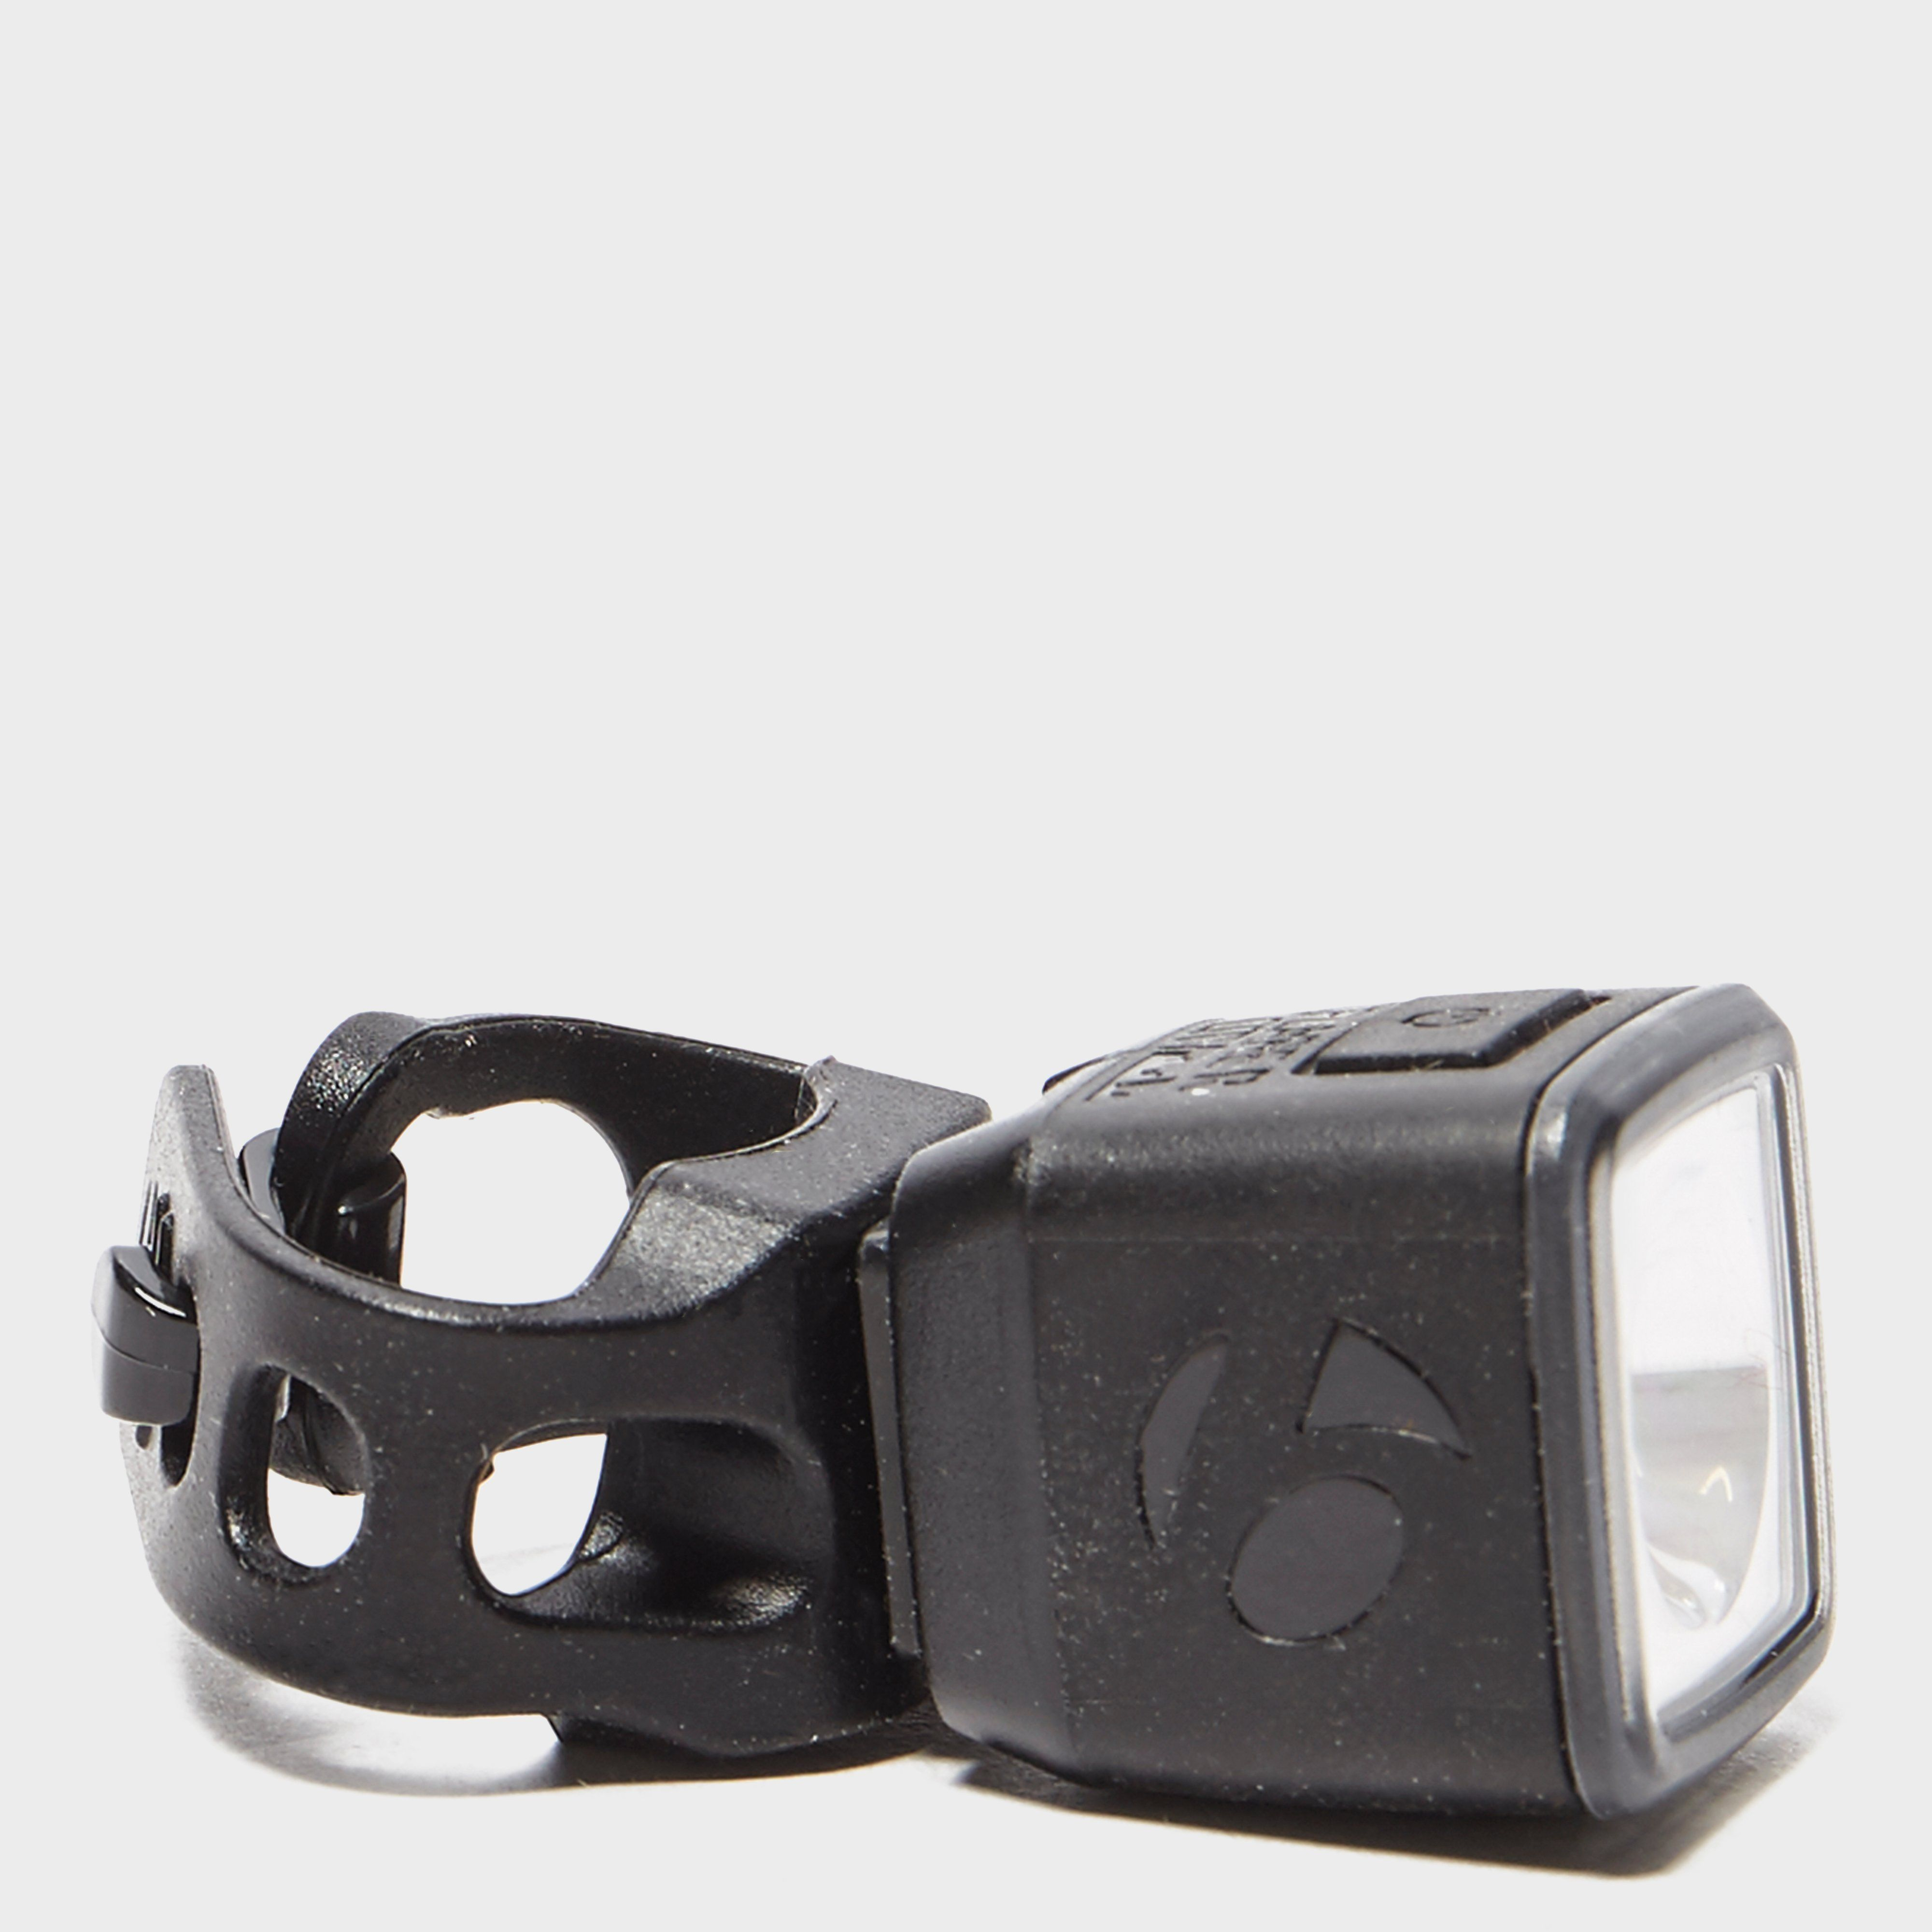 BONTRAGER Flare R City Cycle Light